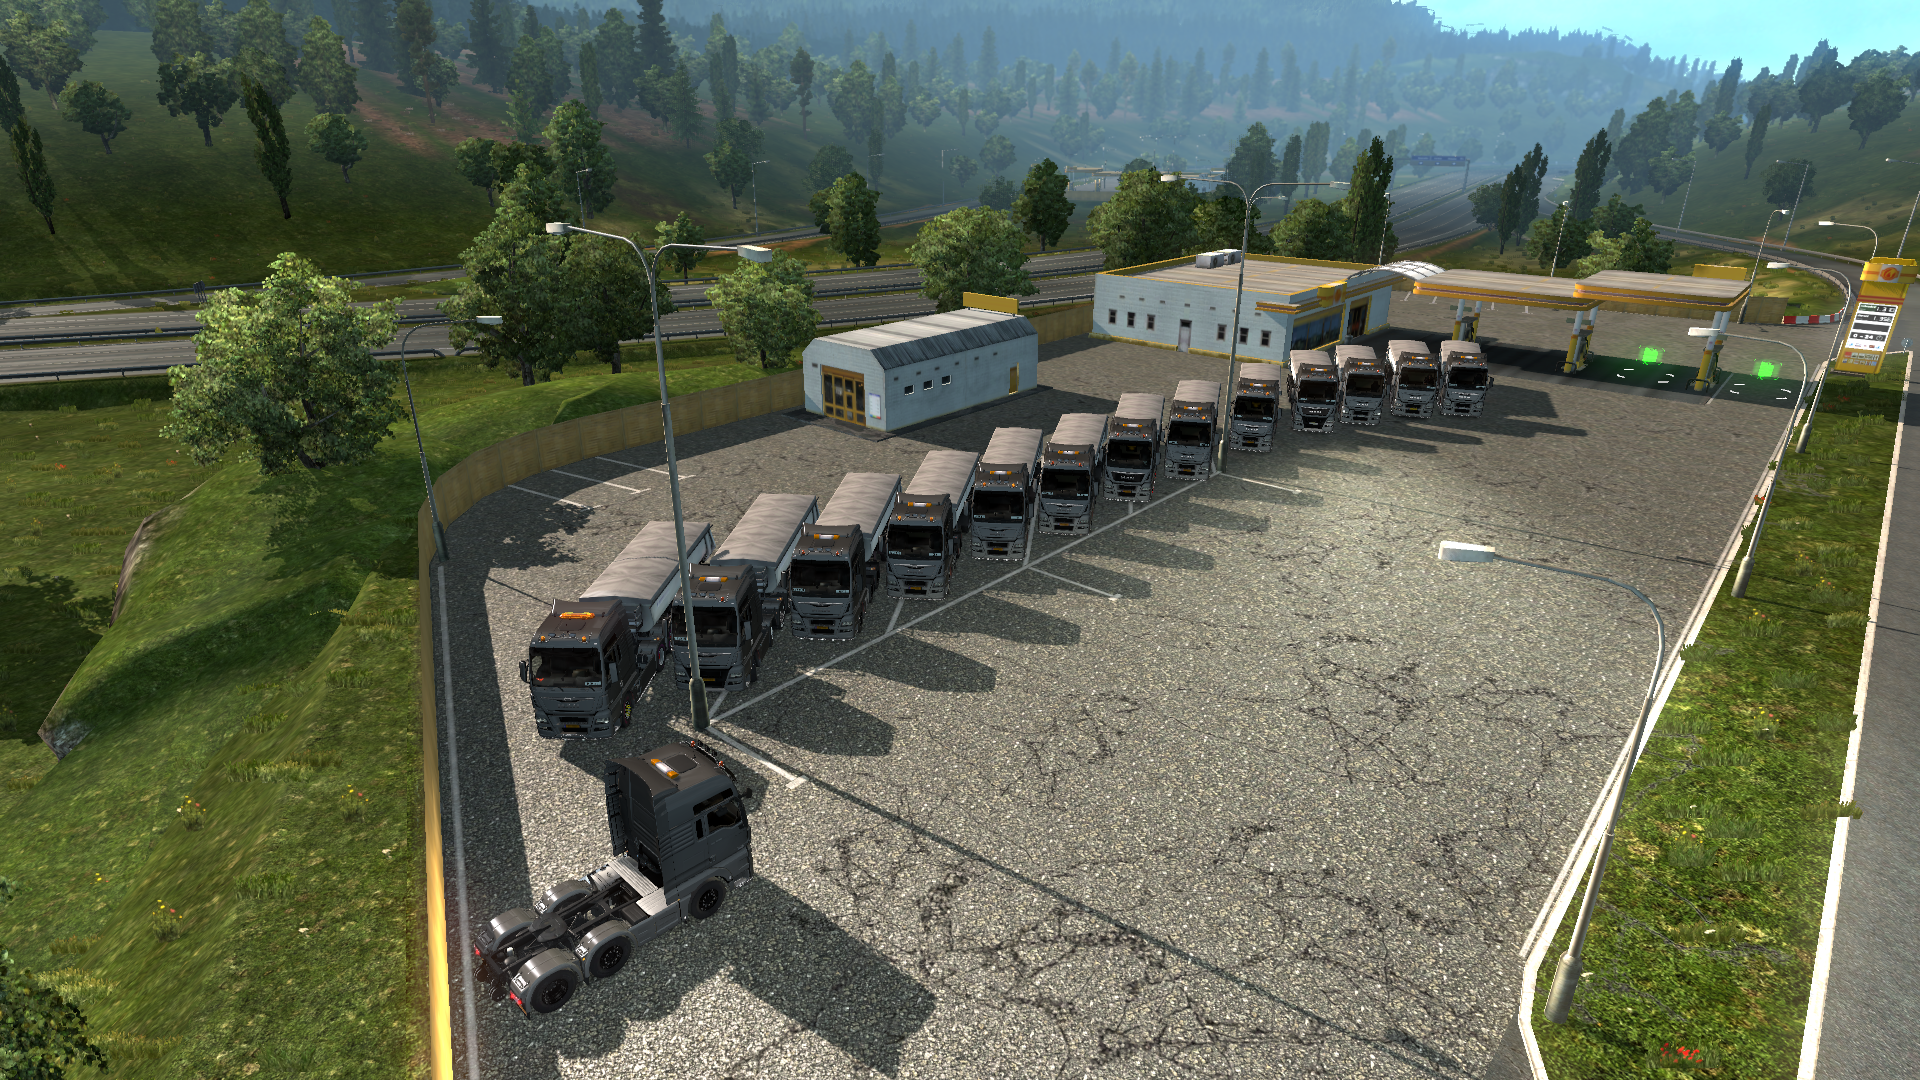 ets2_20190216_194647_00.png